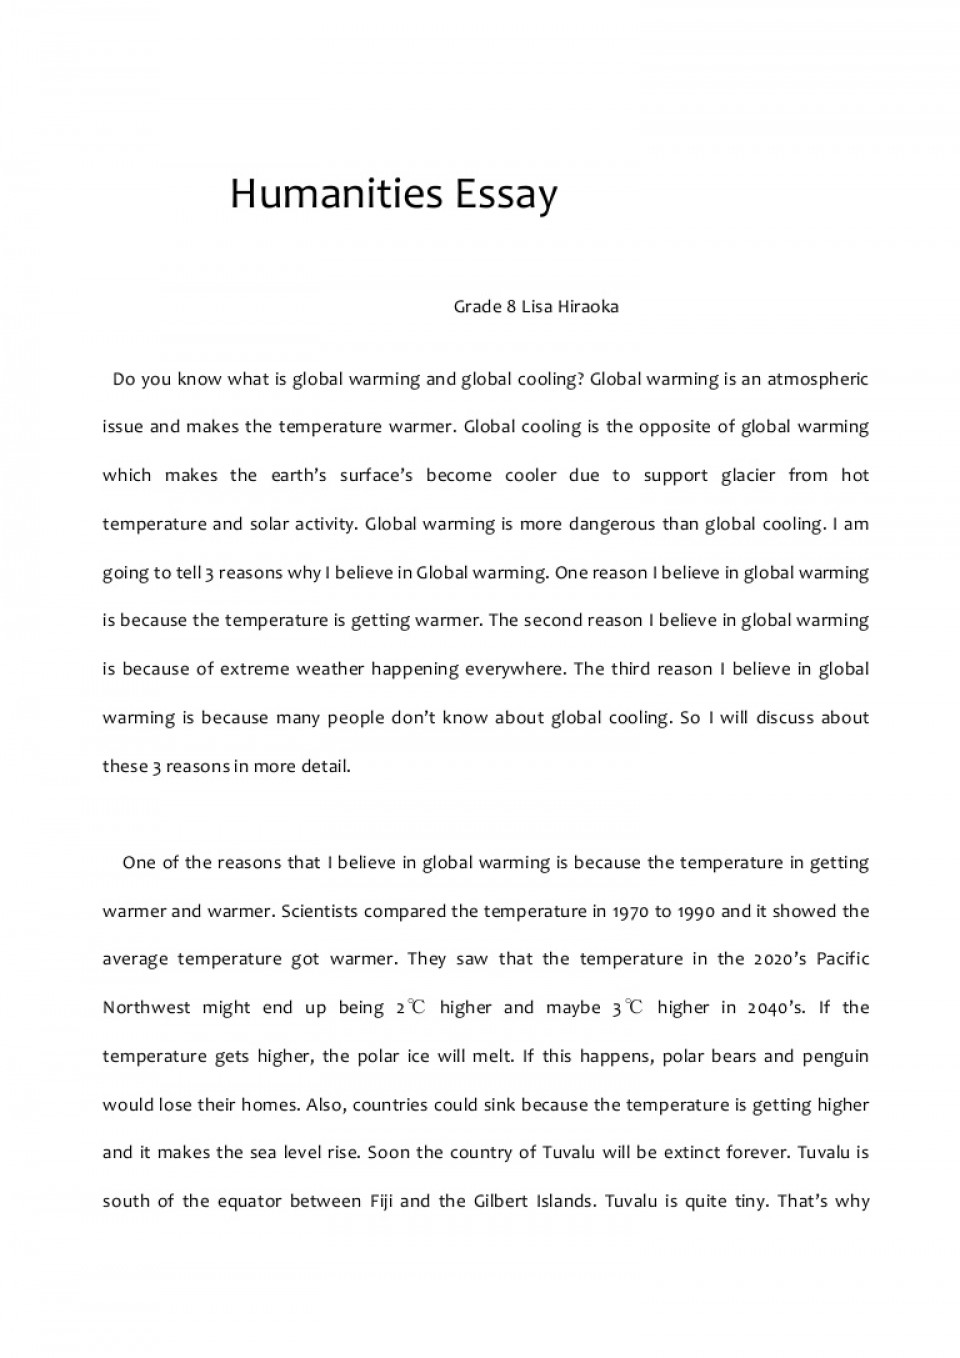 006 Global Warming Essay Humanitiesessay Phpapp02 Thumbnail Unusual Paper Outline Catchy Titles For Ielts Band 9 960